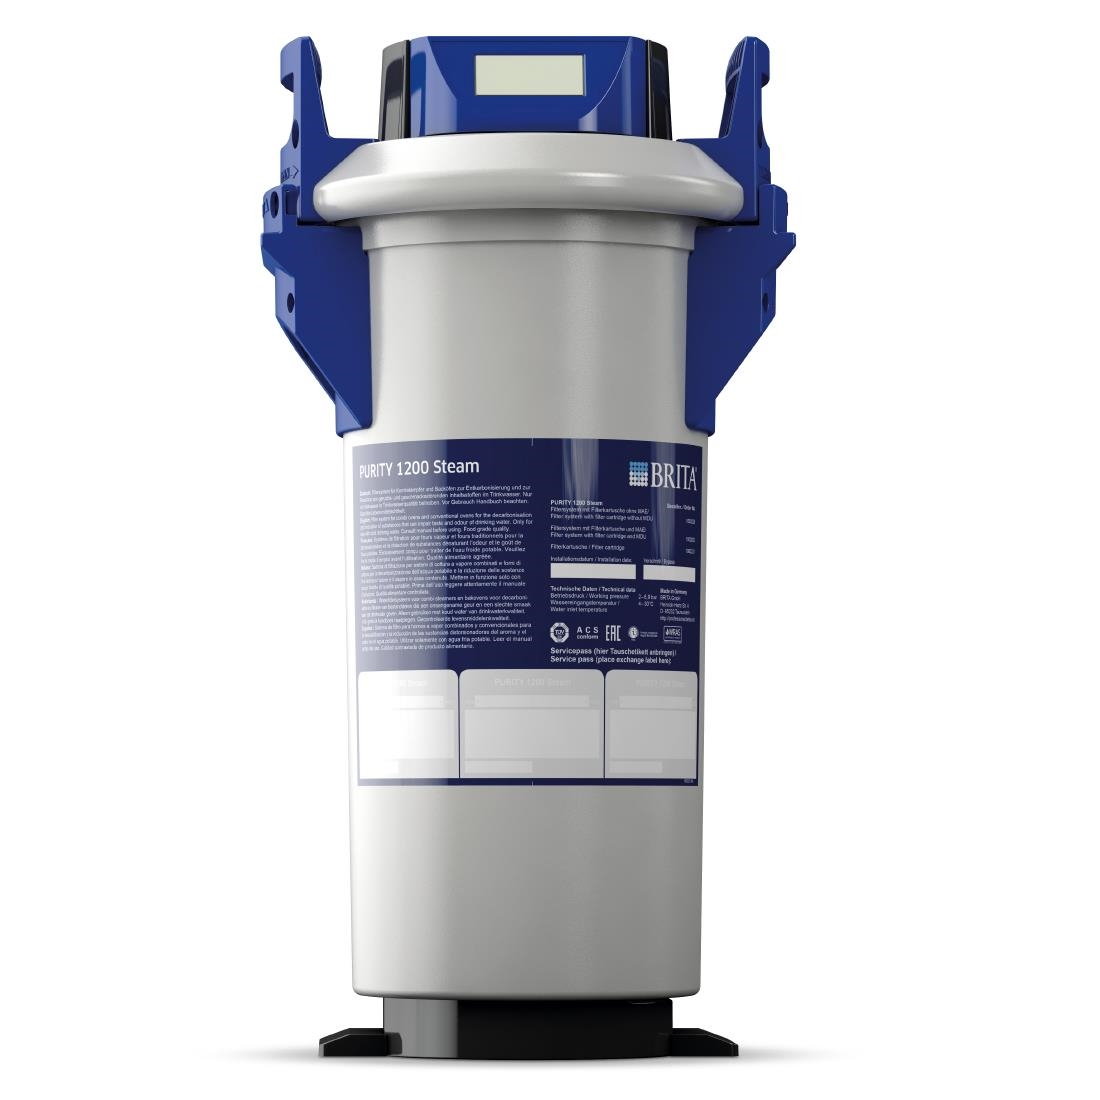 Image of Brita Purity Steam 1200 Water Filter System